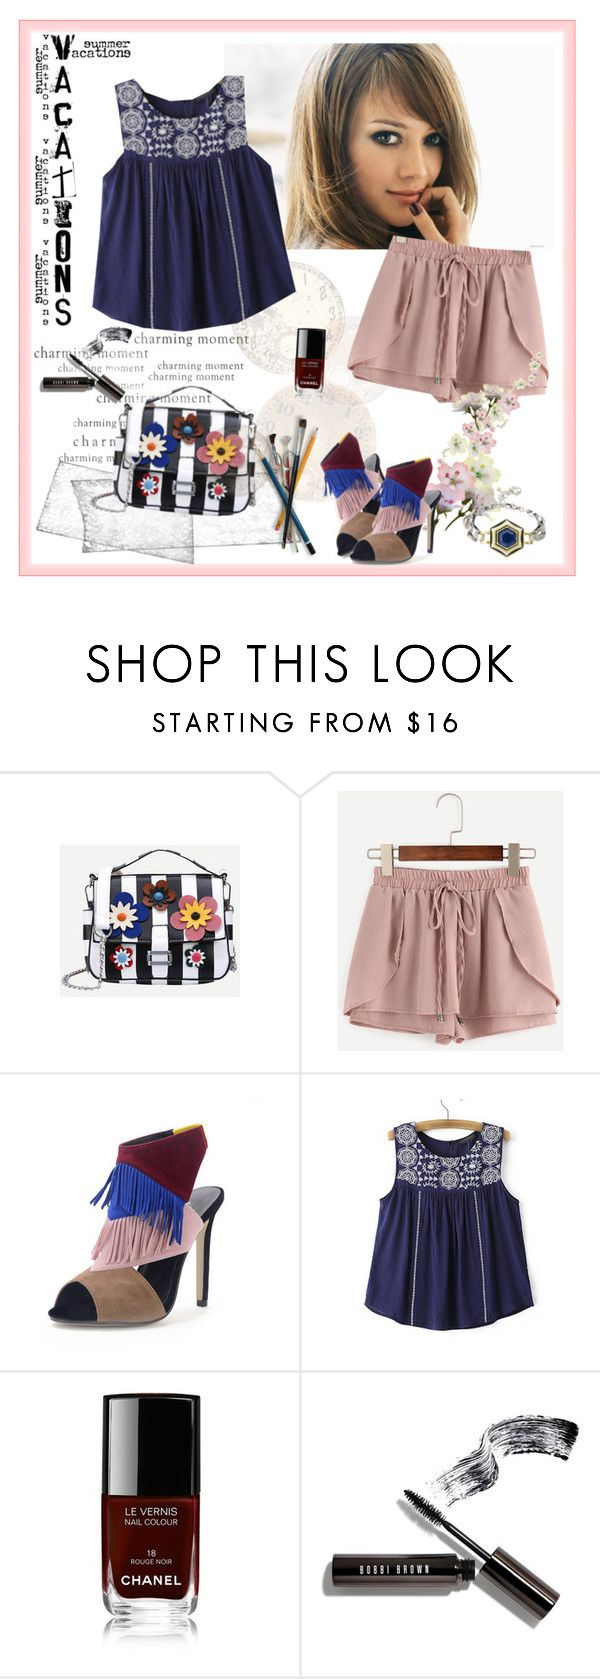 """Win SheIn $30 Coupon"" by carola-corana ❤ liked on Polyvore featuring Chanel, Bobbi Brown Cosmetics and shein"